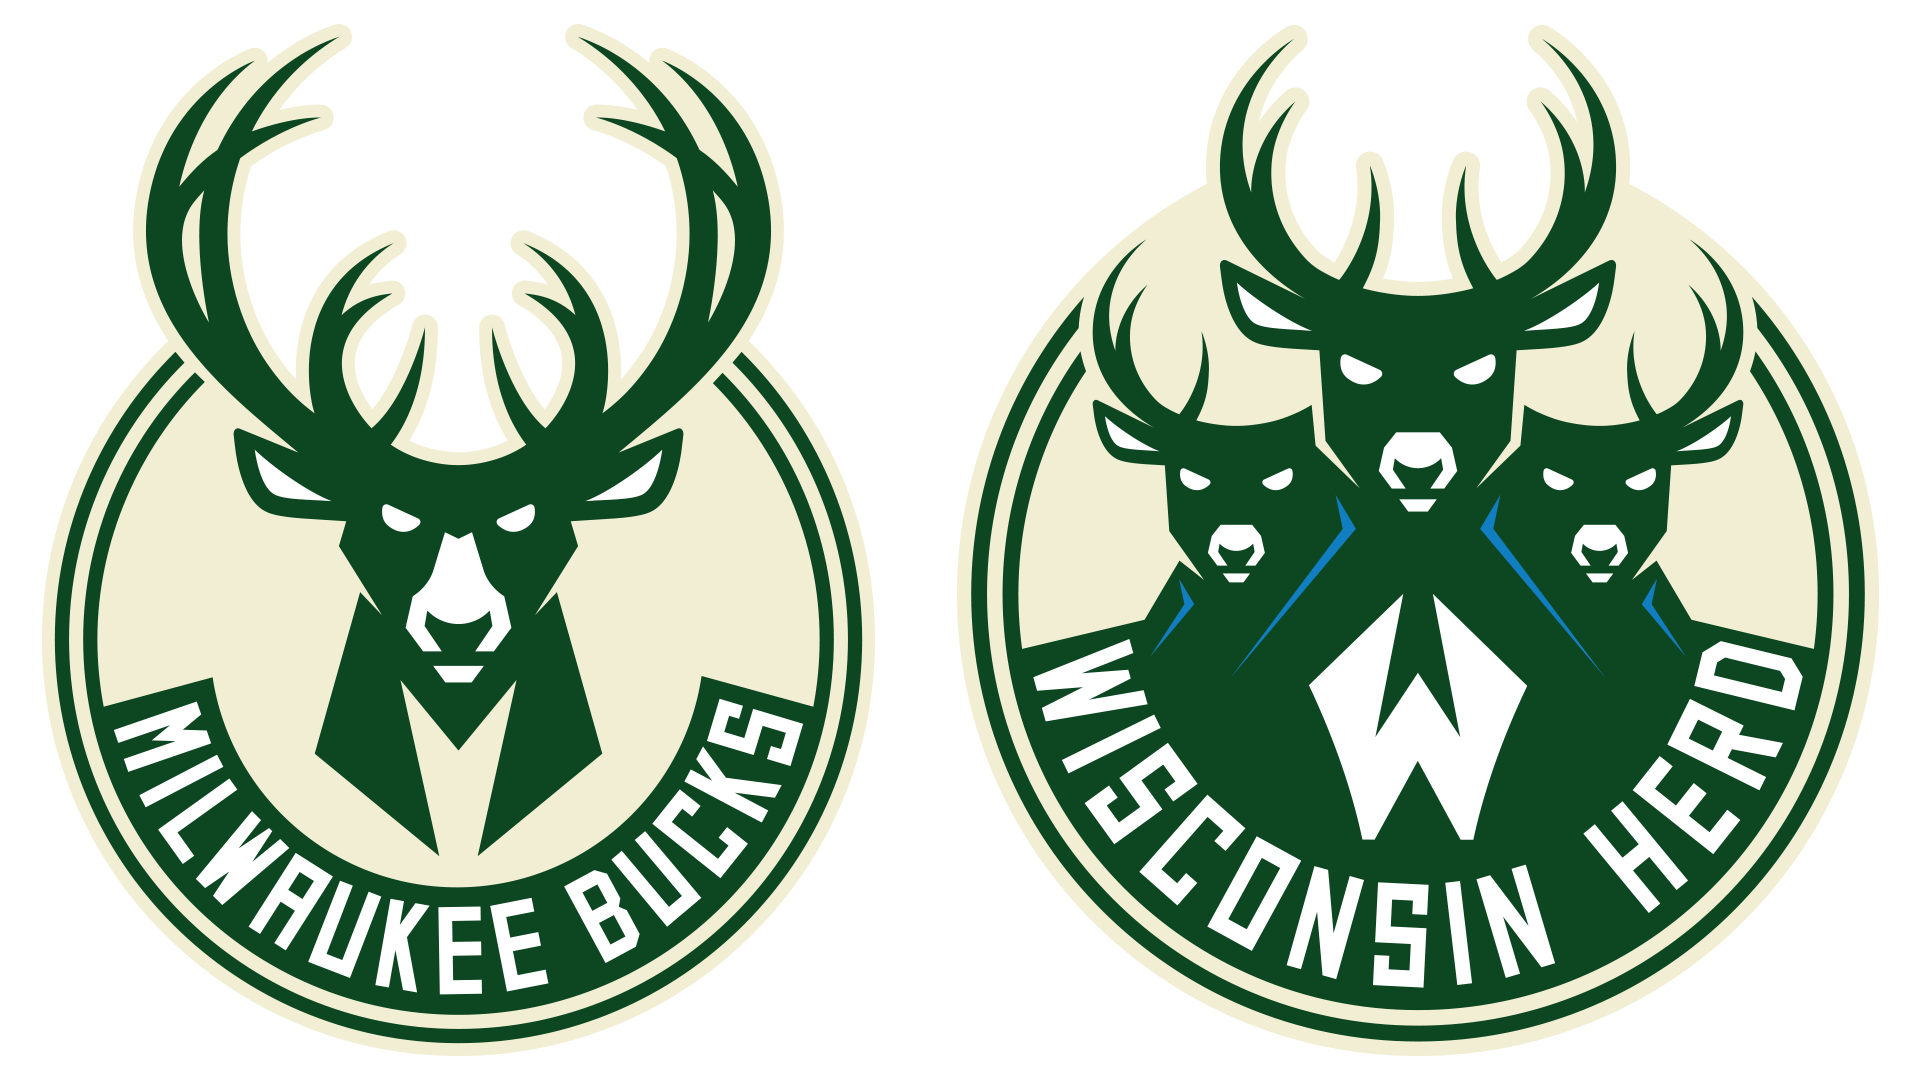 wisconsin herd logo milwaukee bucks clip art of deer eating crops clipart of deer skin